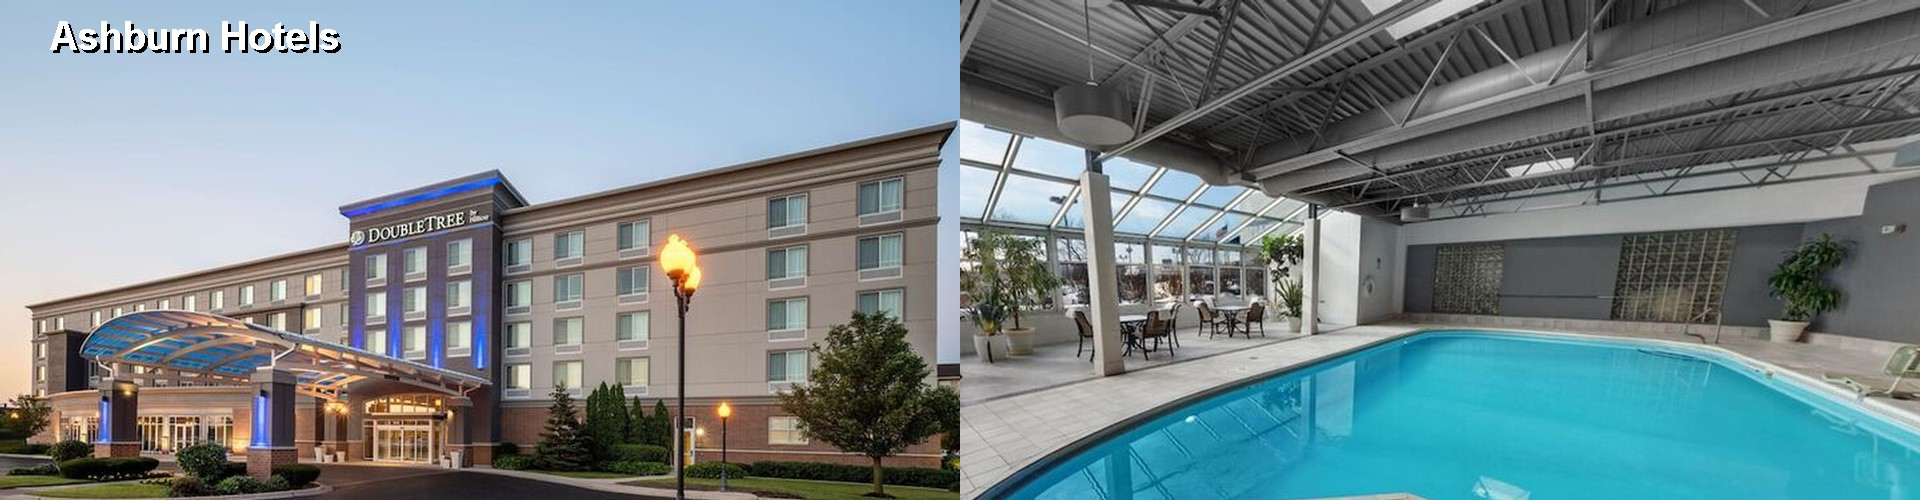 5 Best Hotels near Ashburn